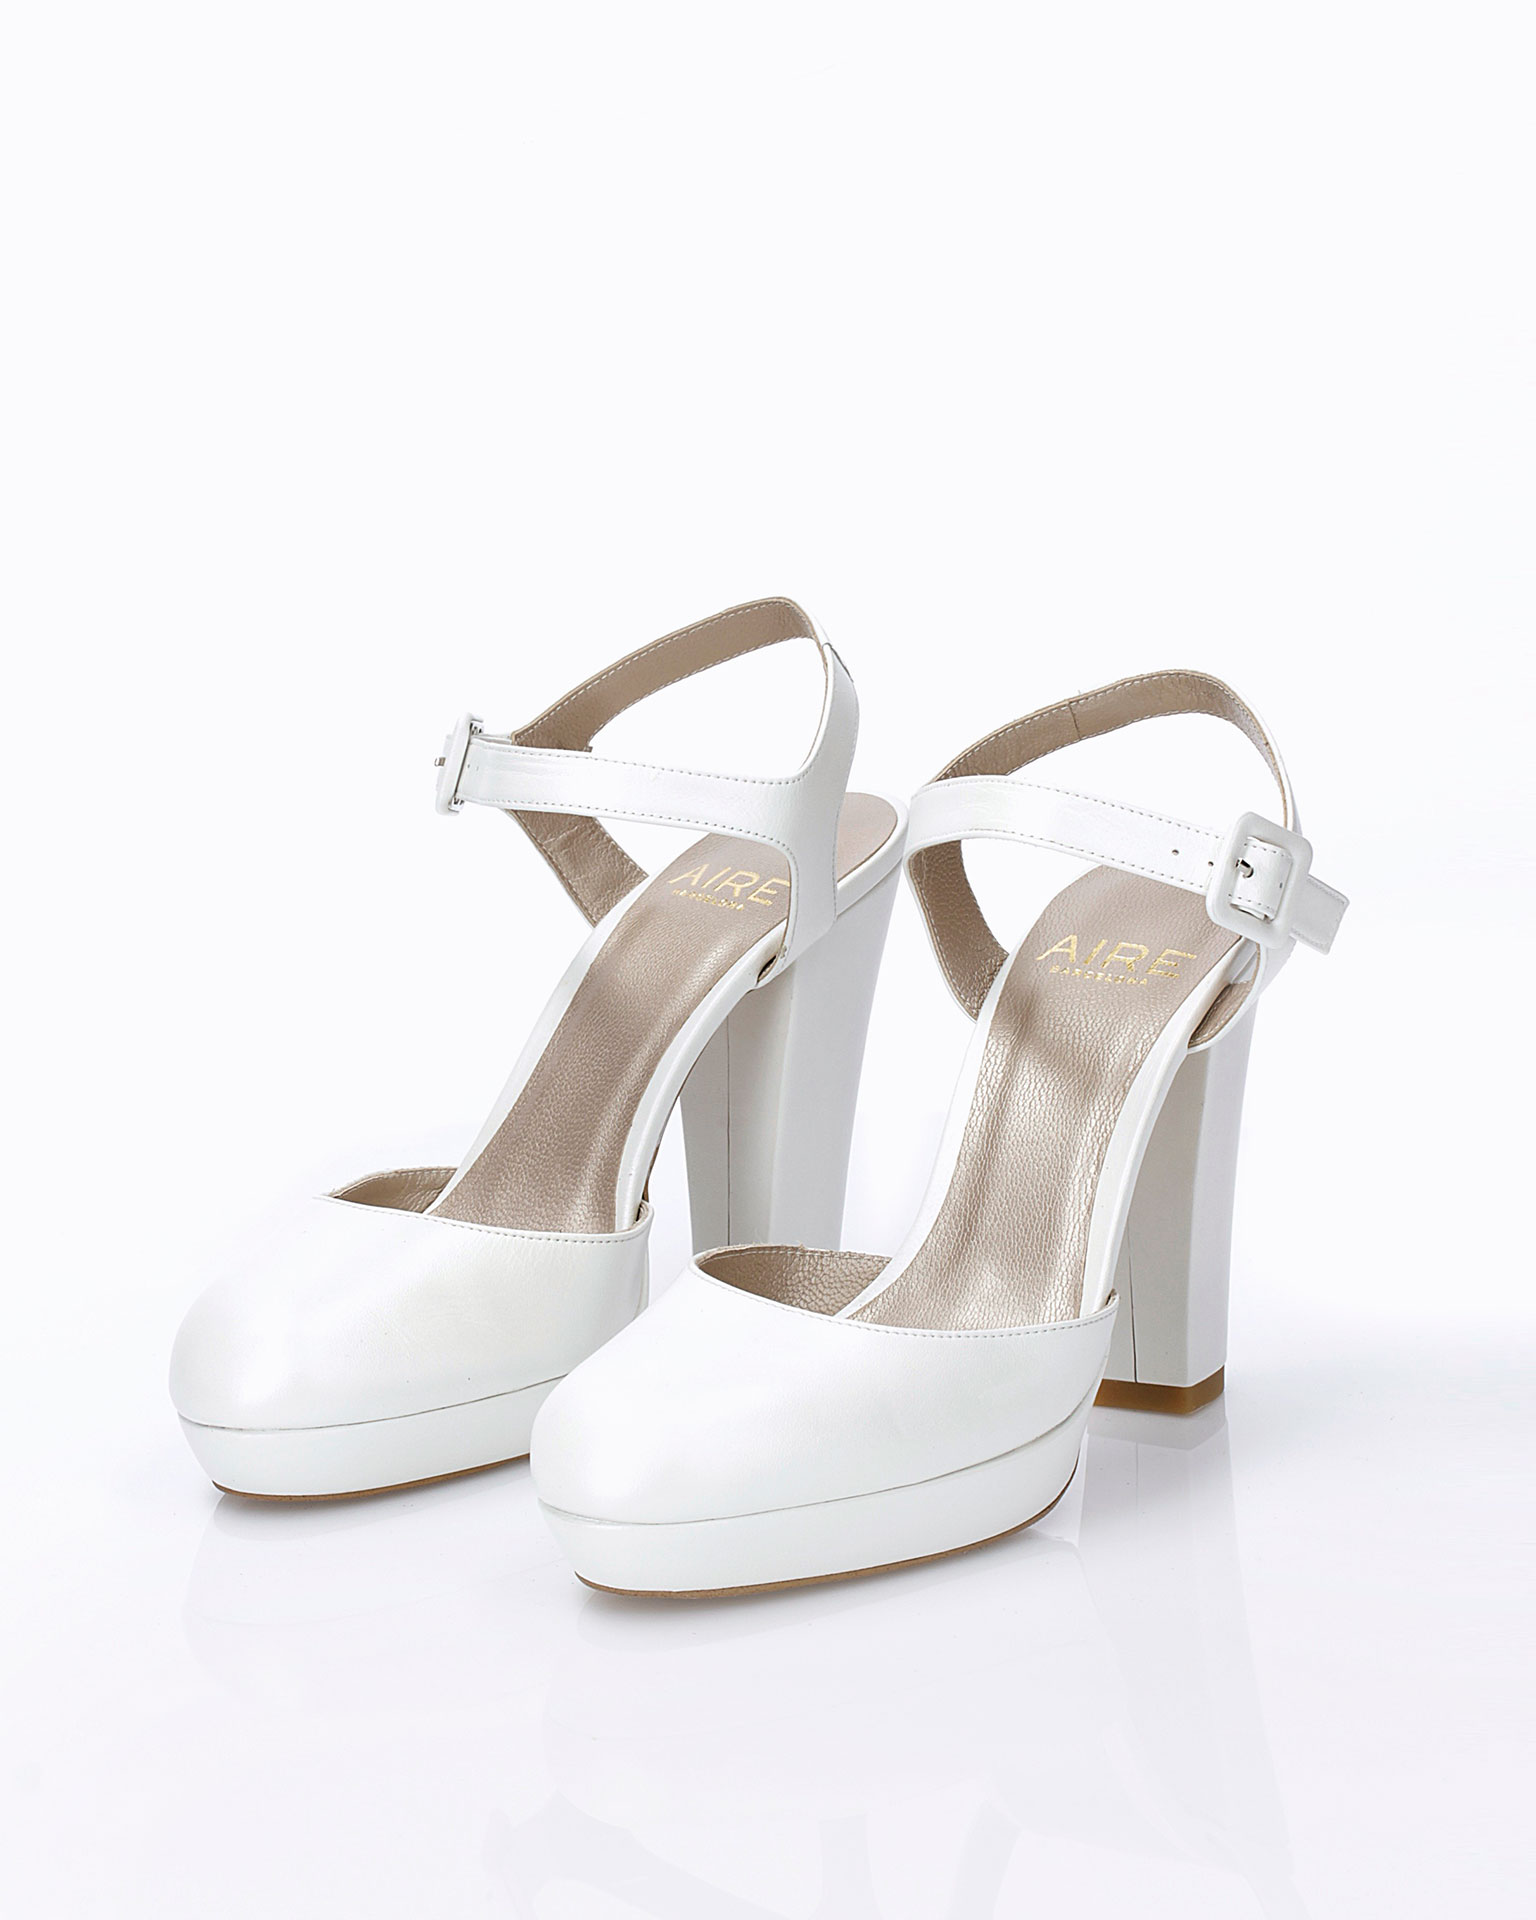 Leather bridal shoe. With high heel and open back. Available in natural and camel. 2019 AIRE BARCELONA Collection.